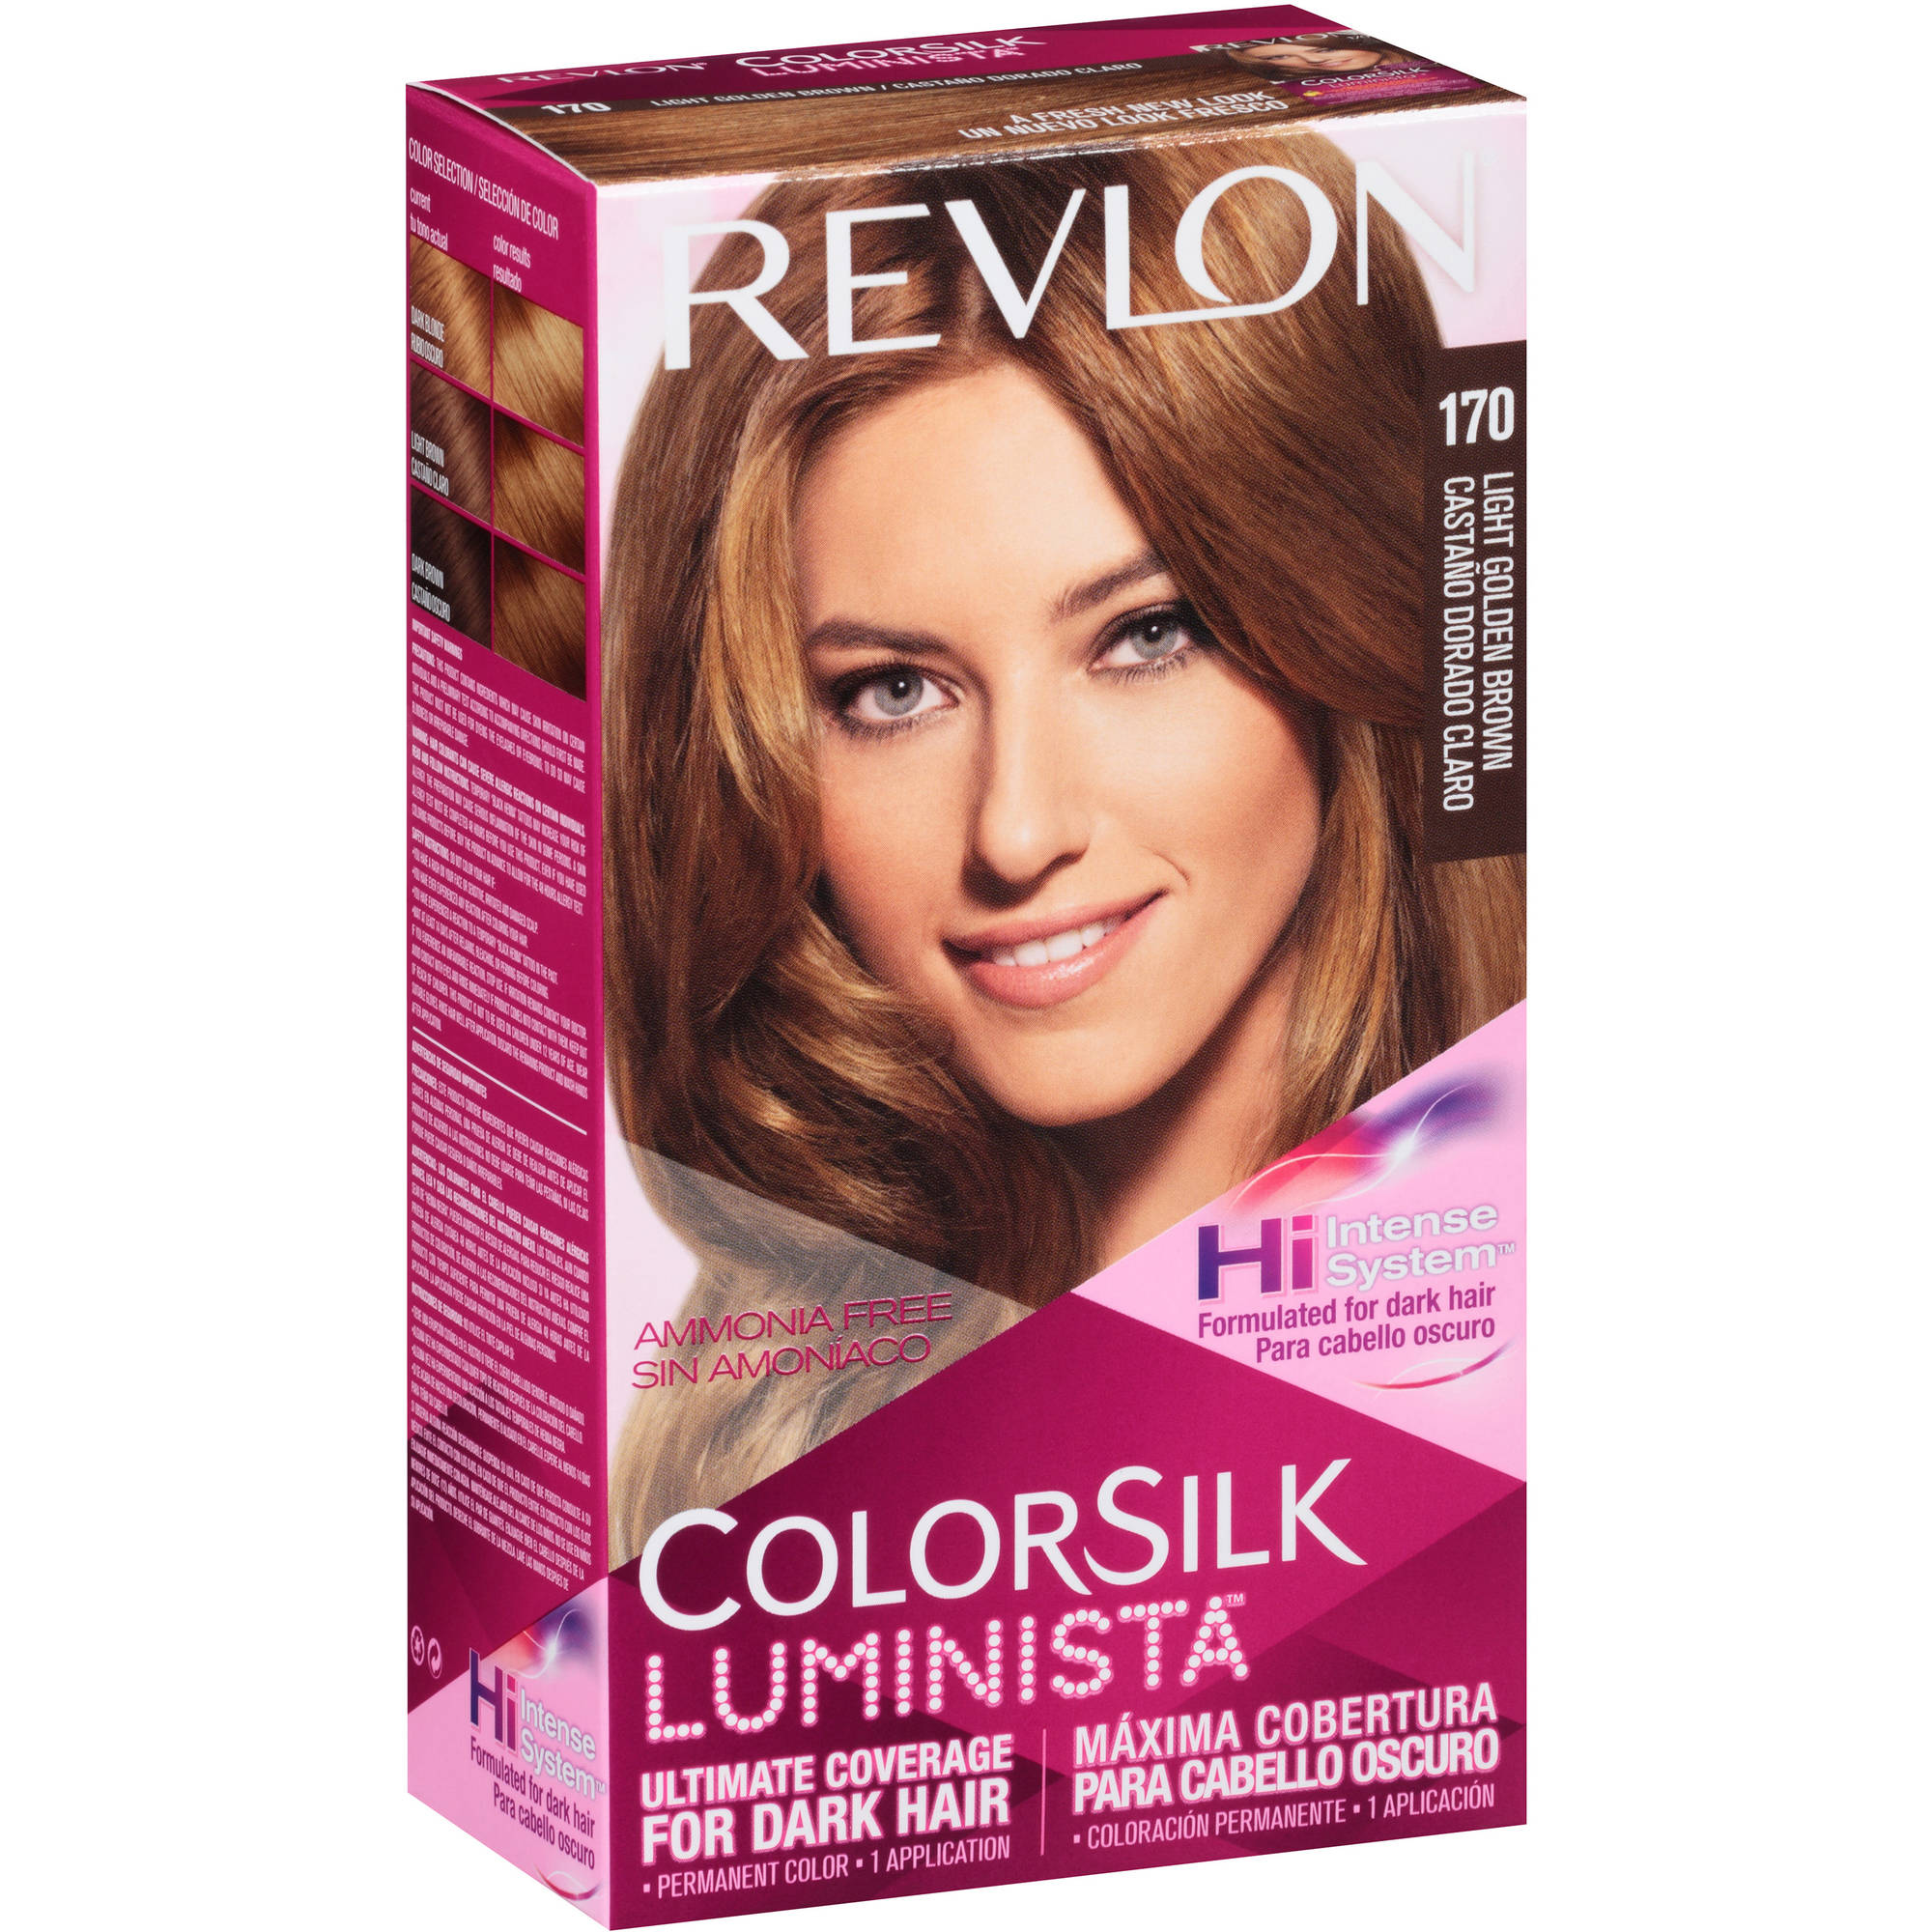 Revlon® Colorsilk Luminista™ Permanent Liquid Hair Color